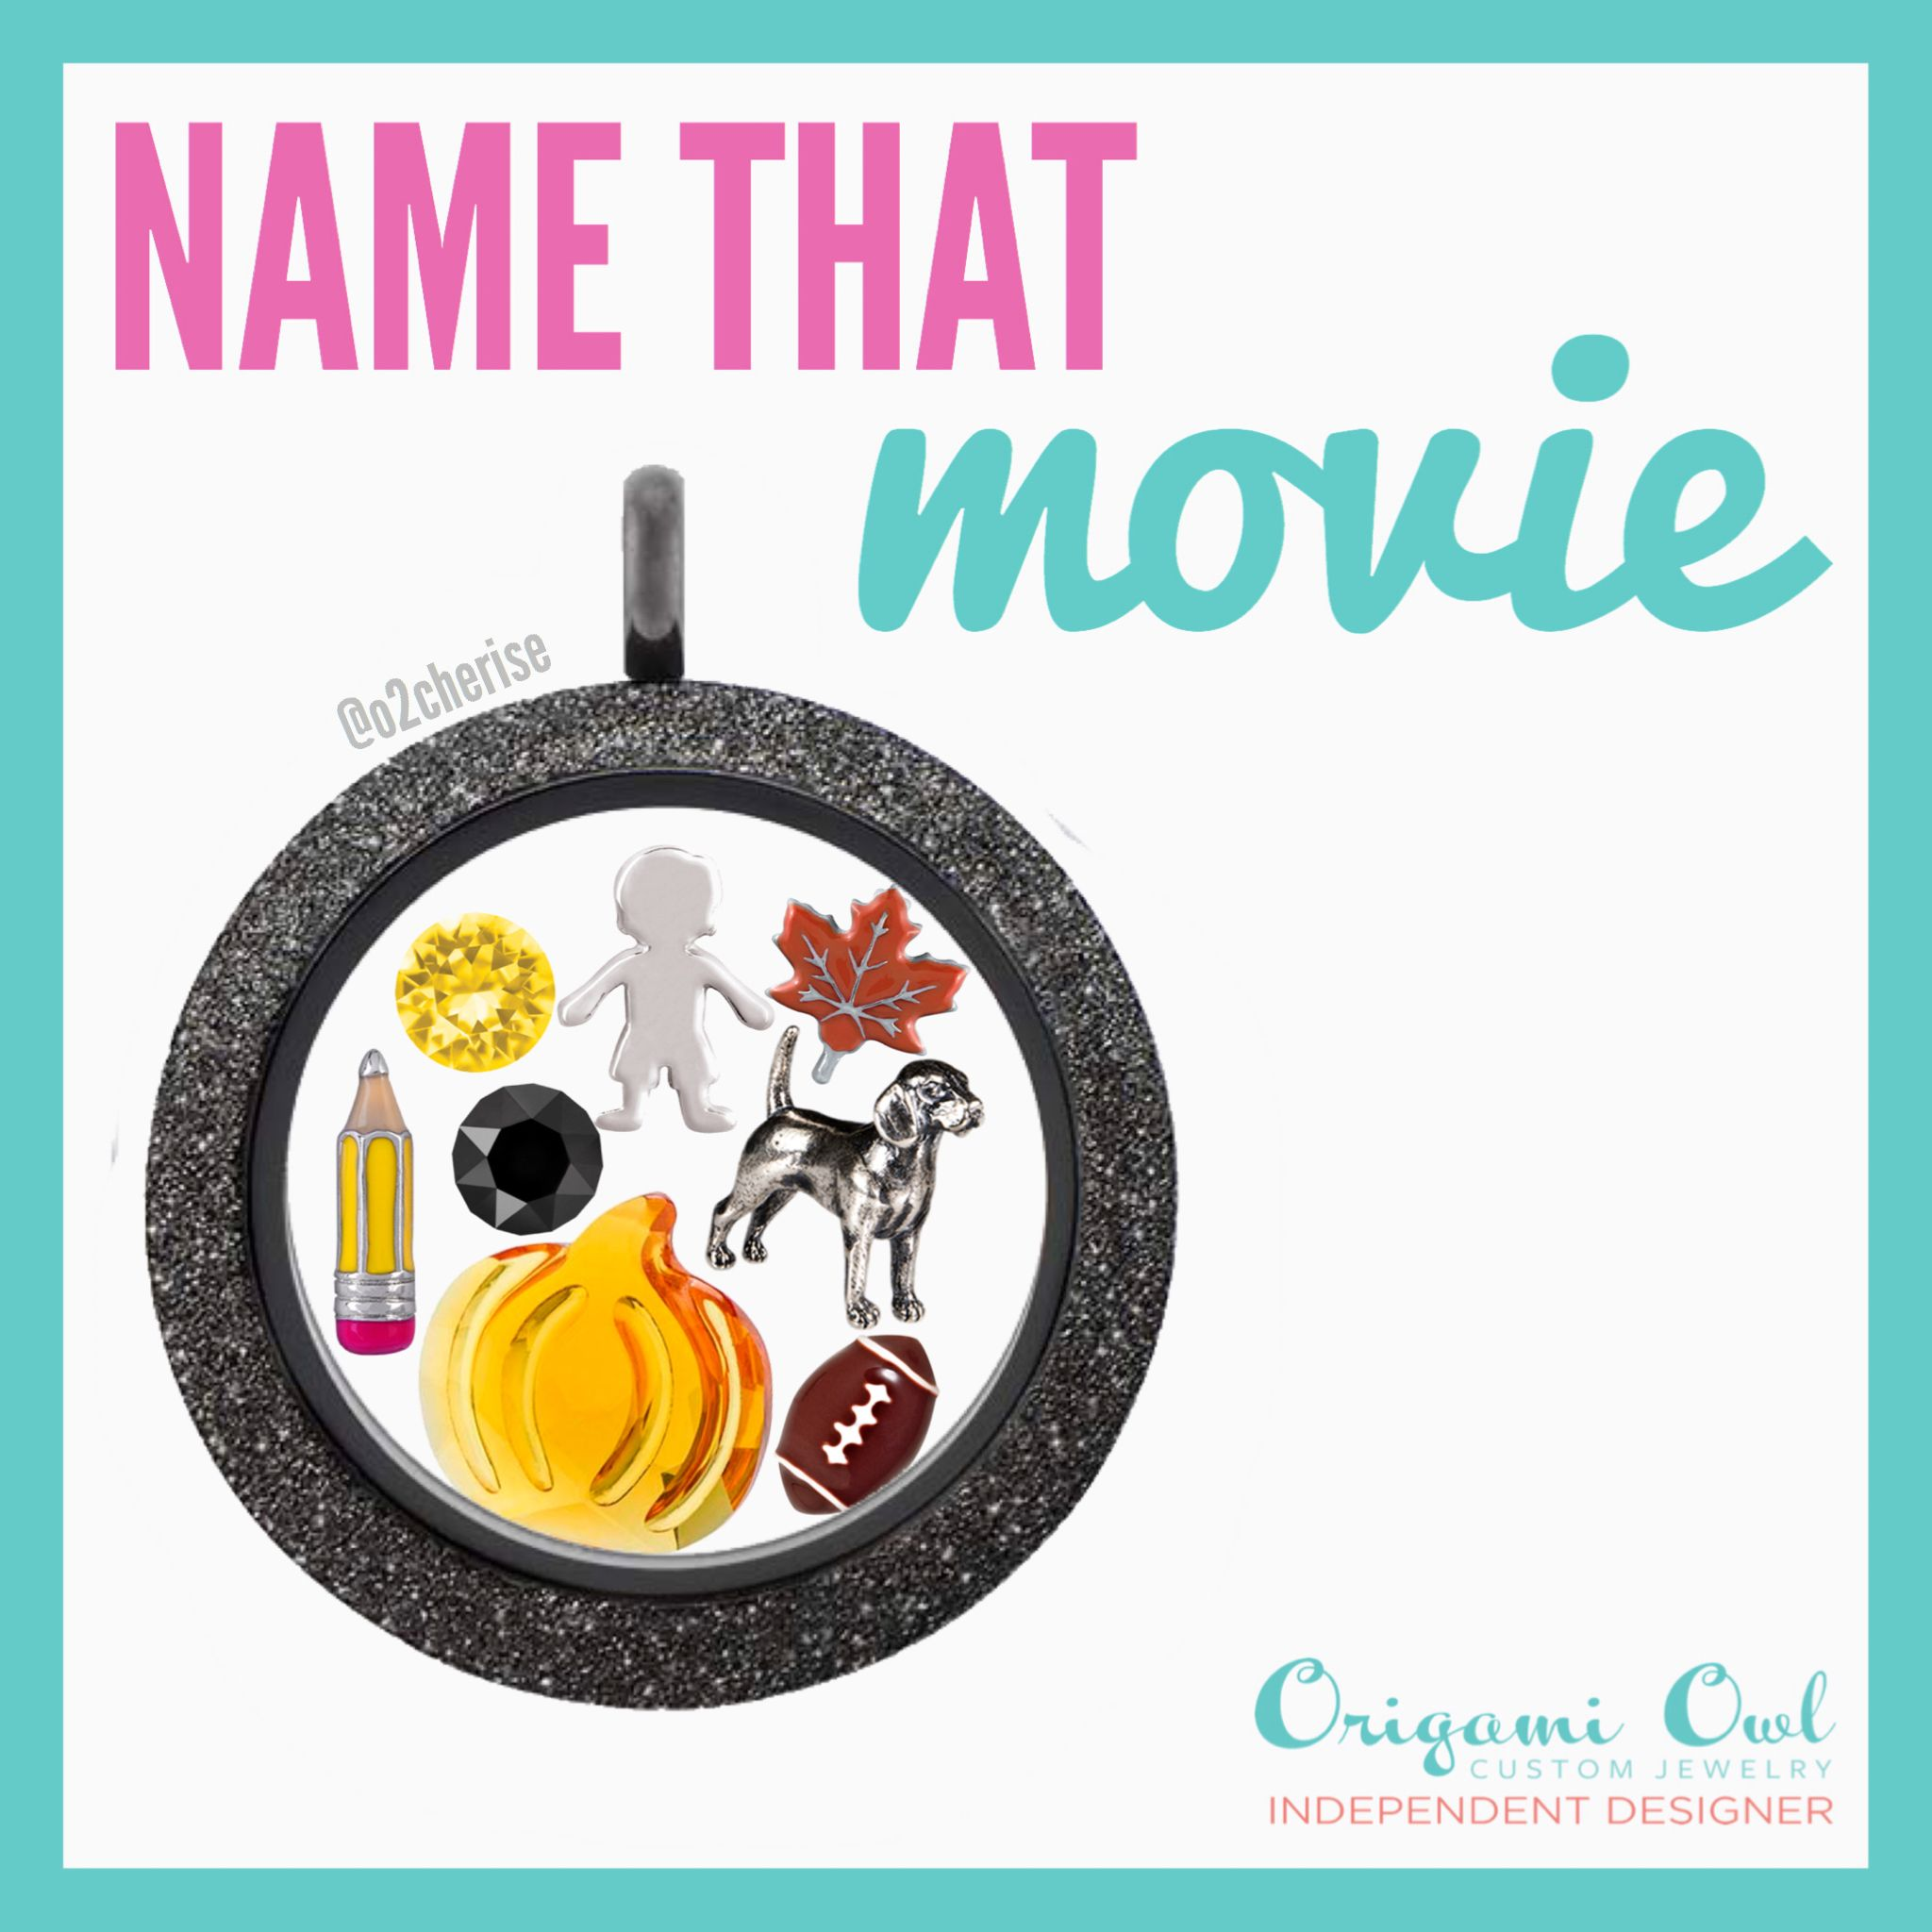 Pin by Katie Adolay on Origami Owl! | Origami owl games, Origami ... | 2048x2048